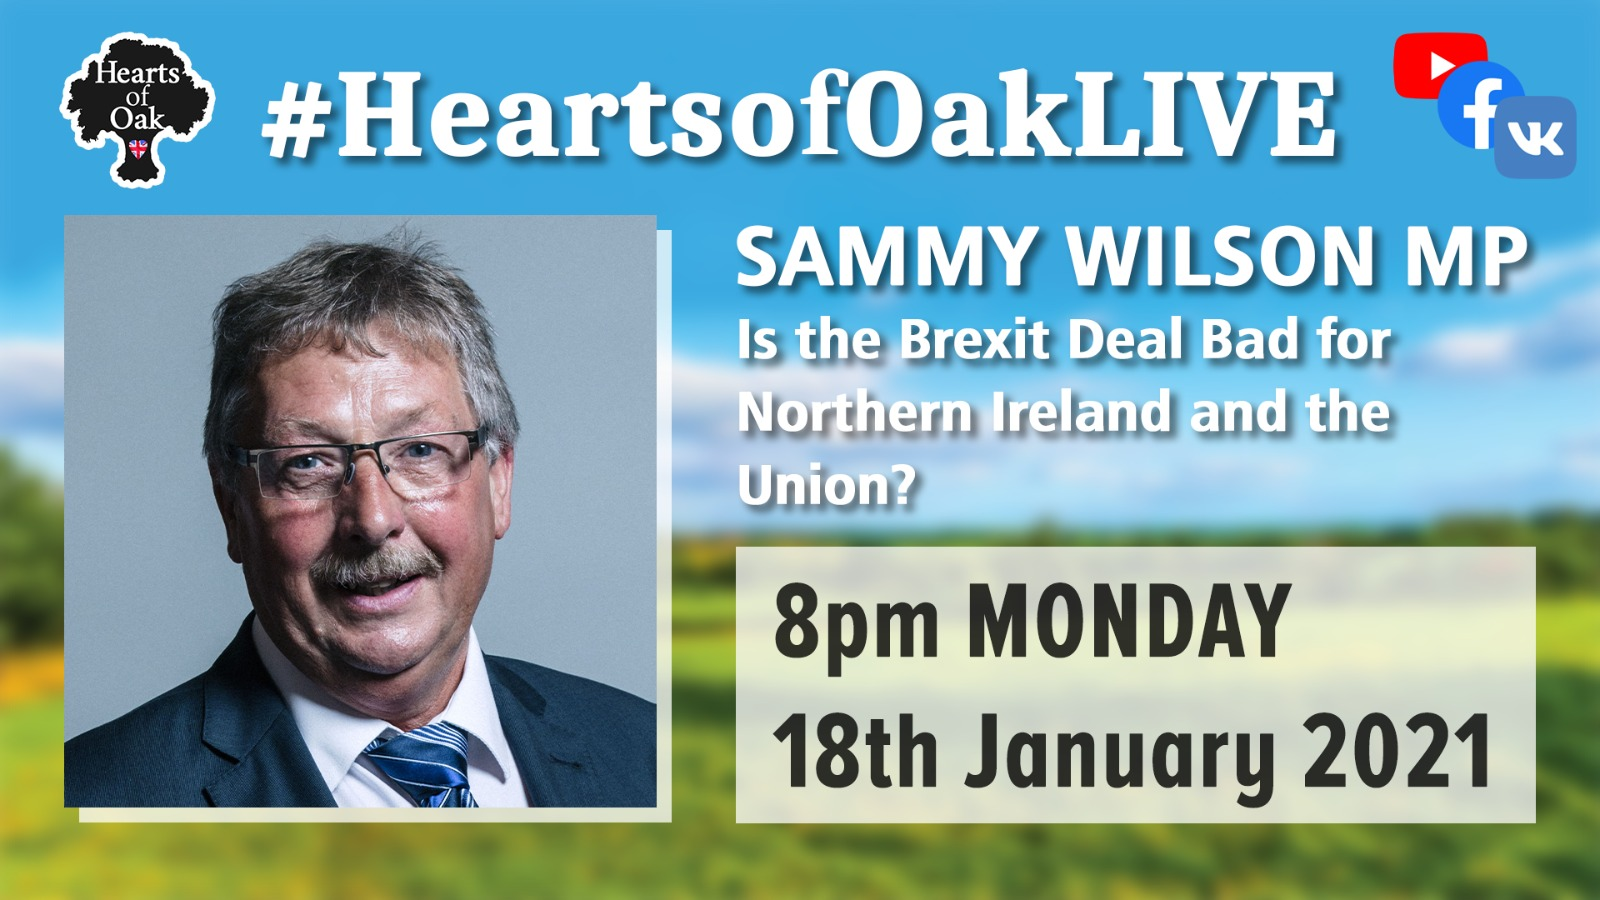 Sammy Wilson MP asks if the Brexit deal is bad for Northern Ireland and the Union